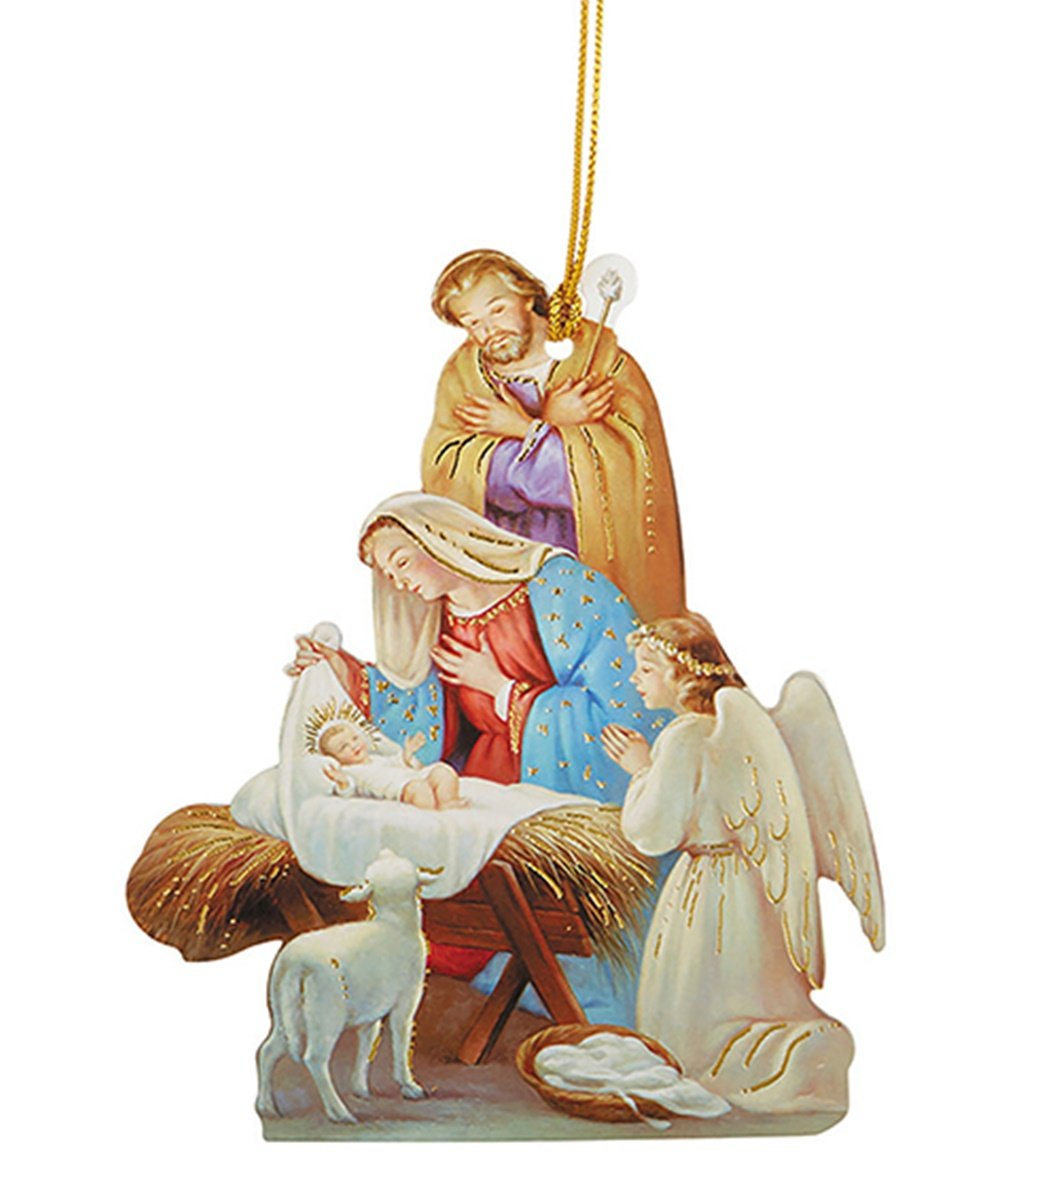 Praying Angel Laminated Cardstock Nativity Ornament with Bible Verse, Pack of 50